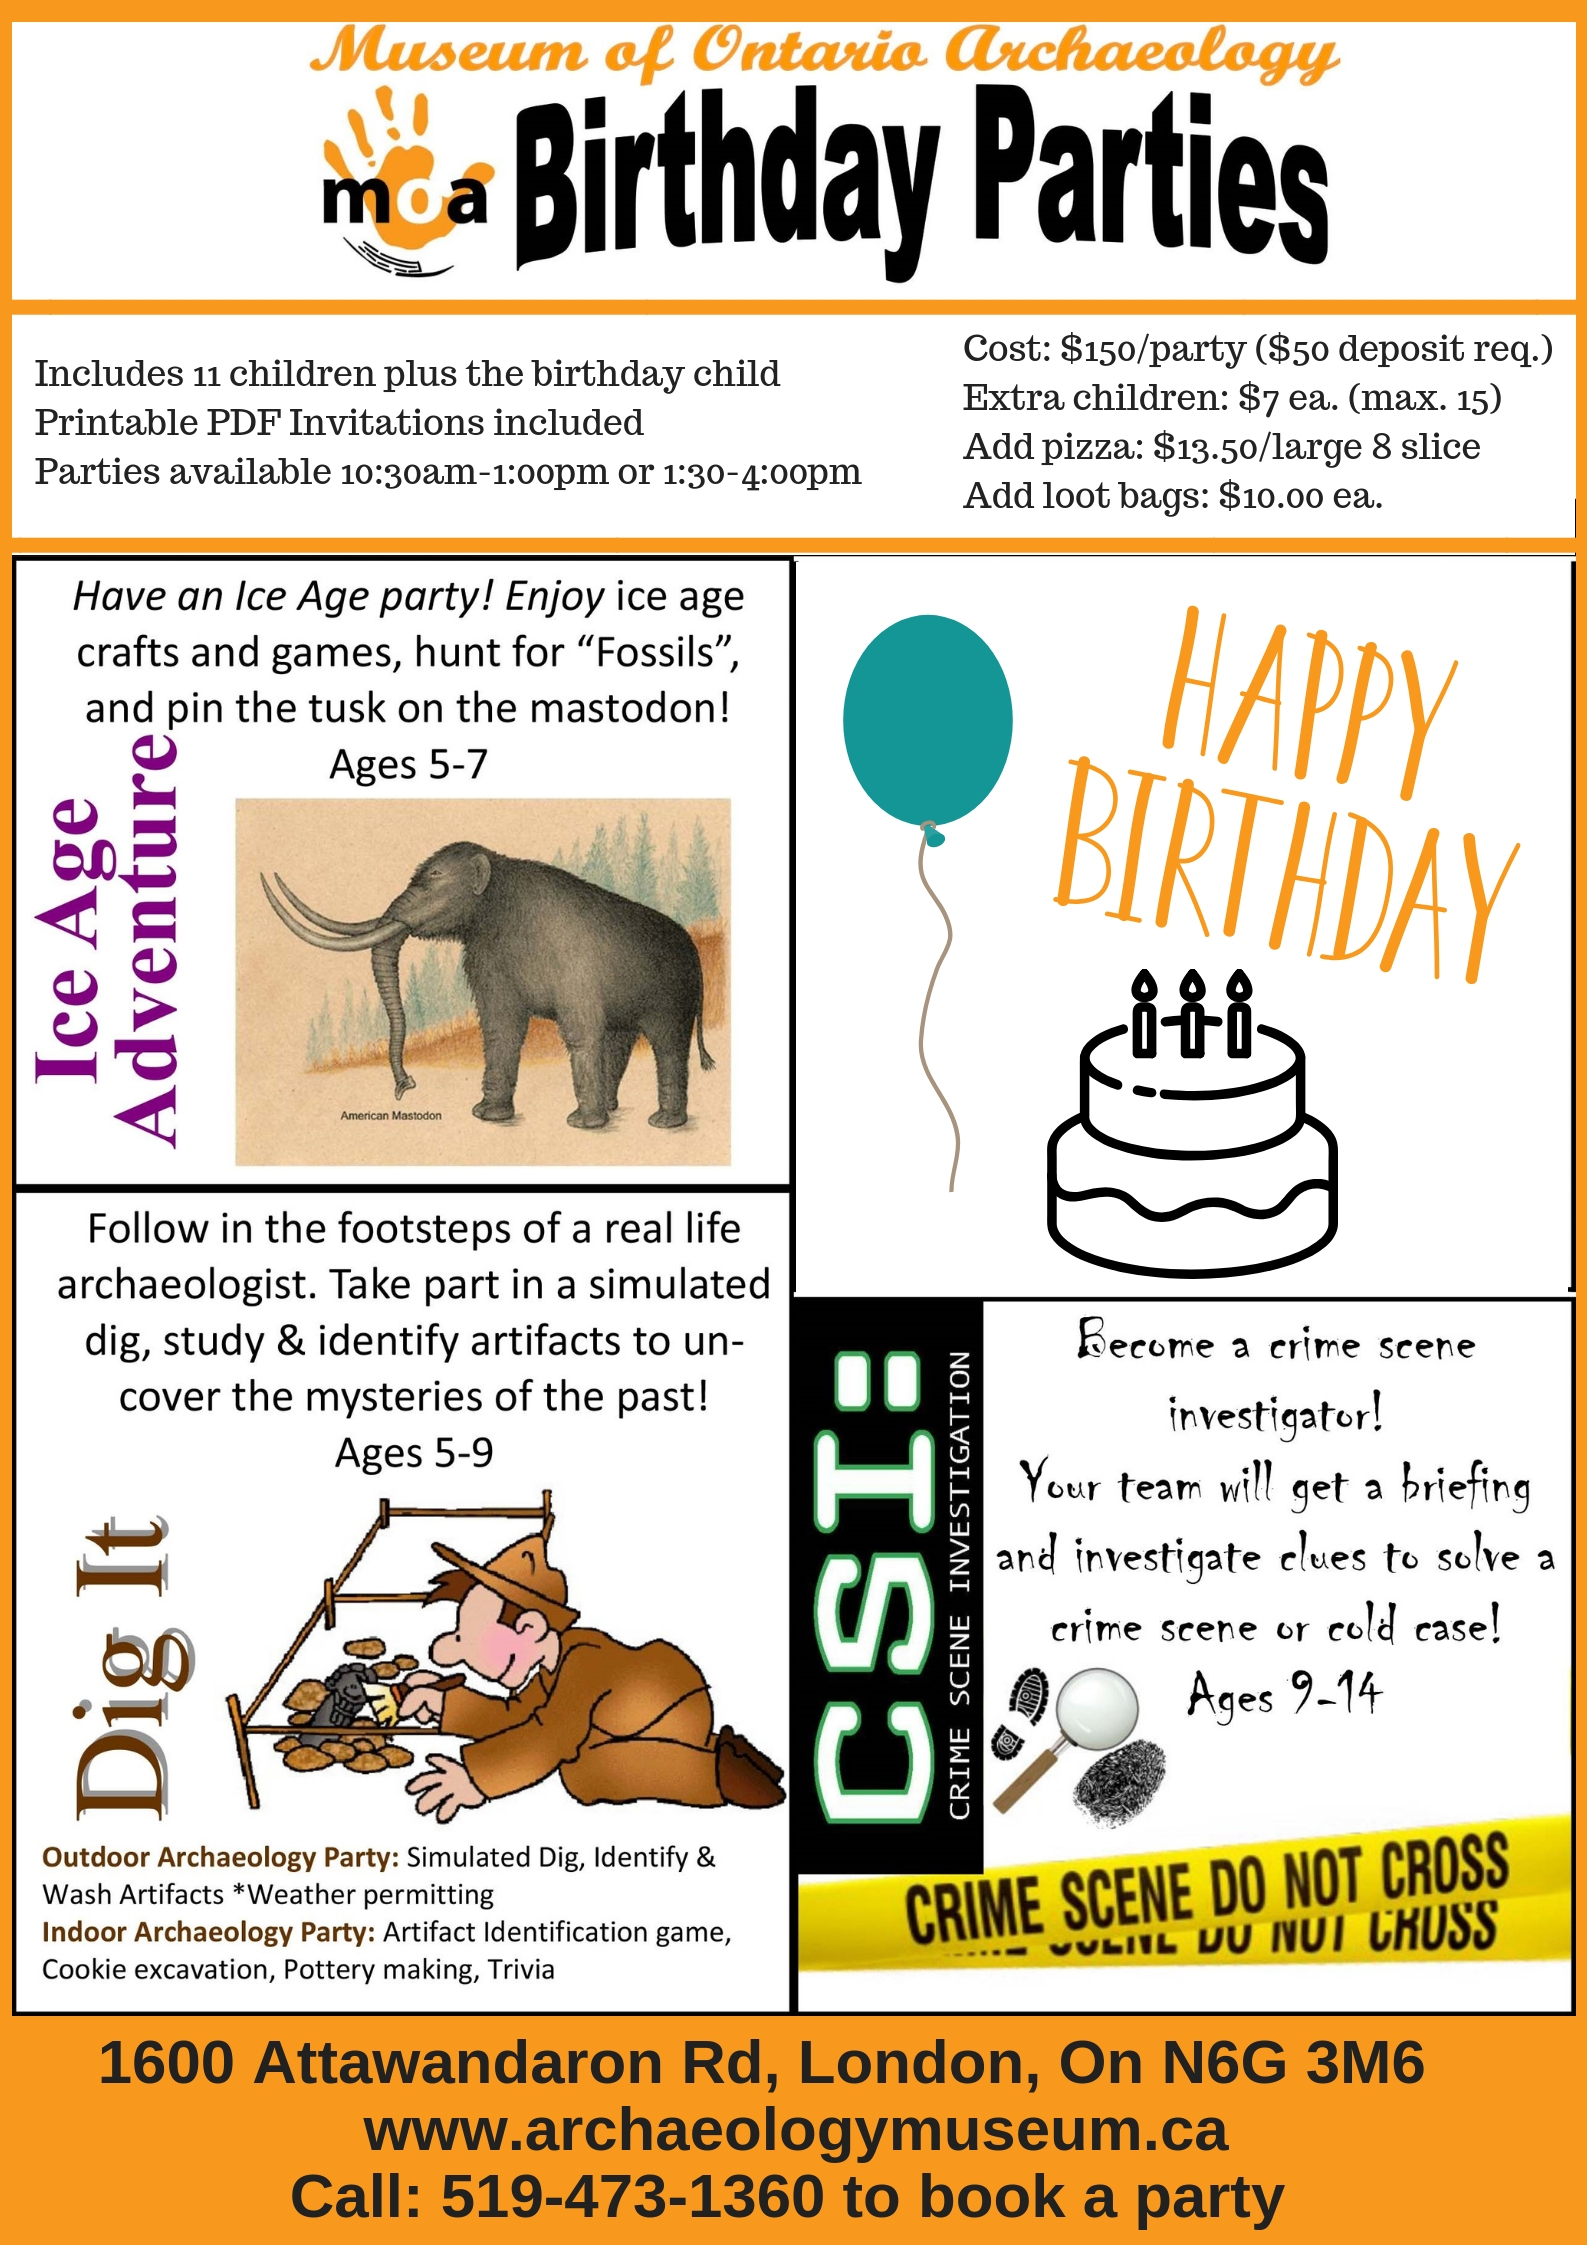 Learn More About This Awesome Birthday Party Place For Kids